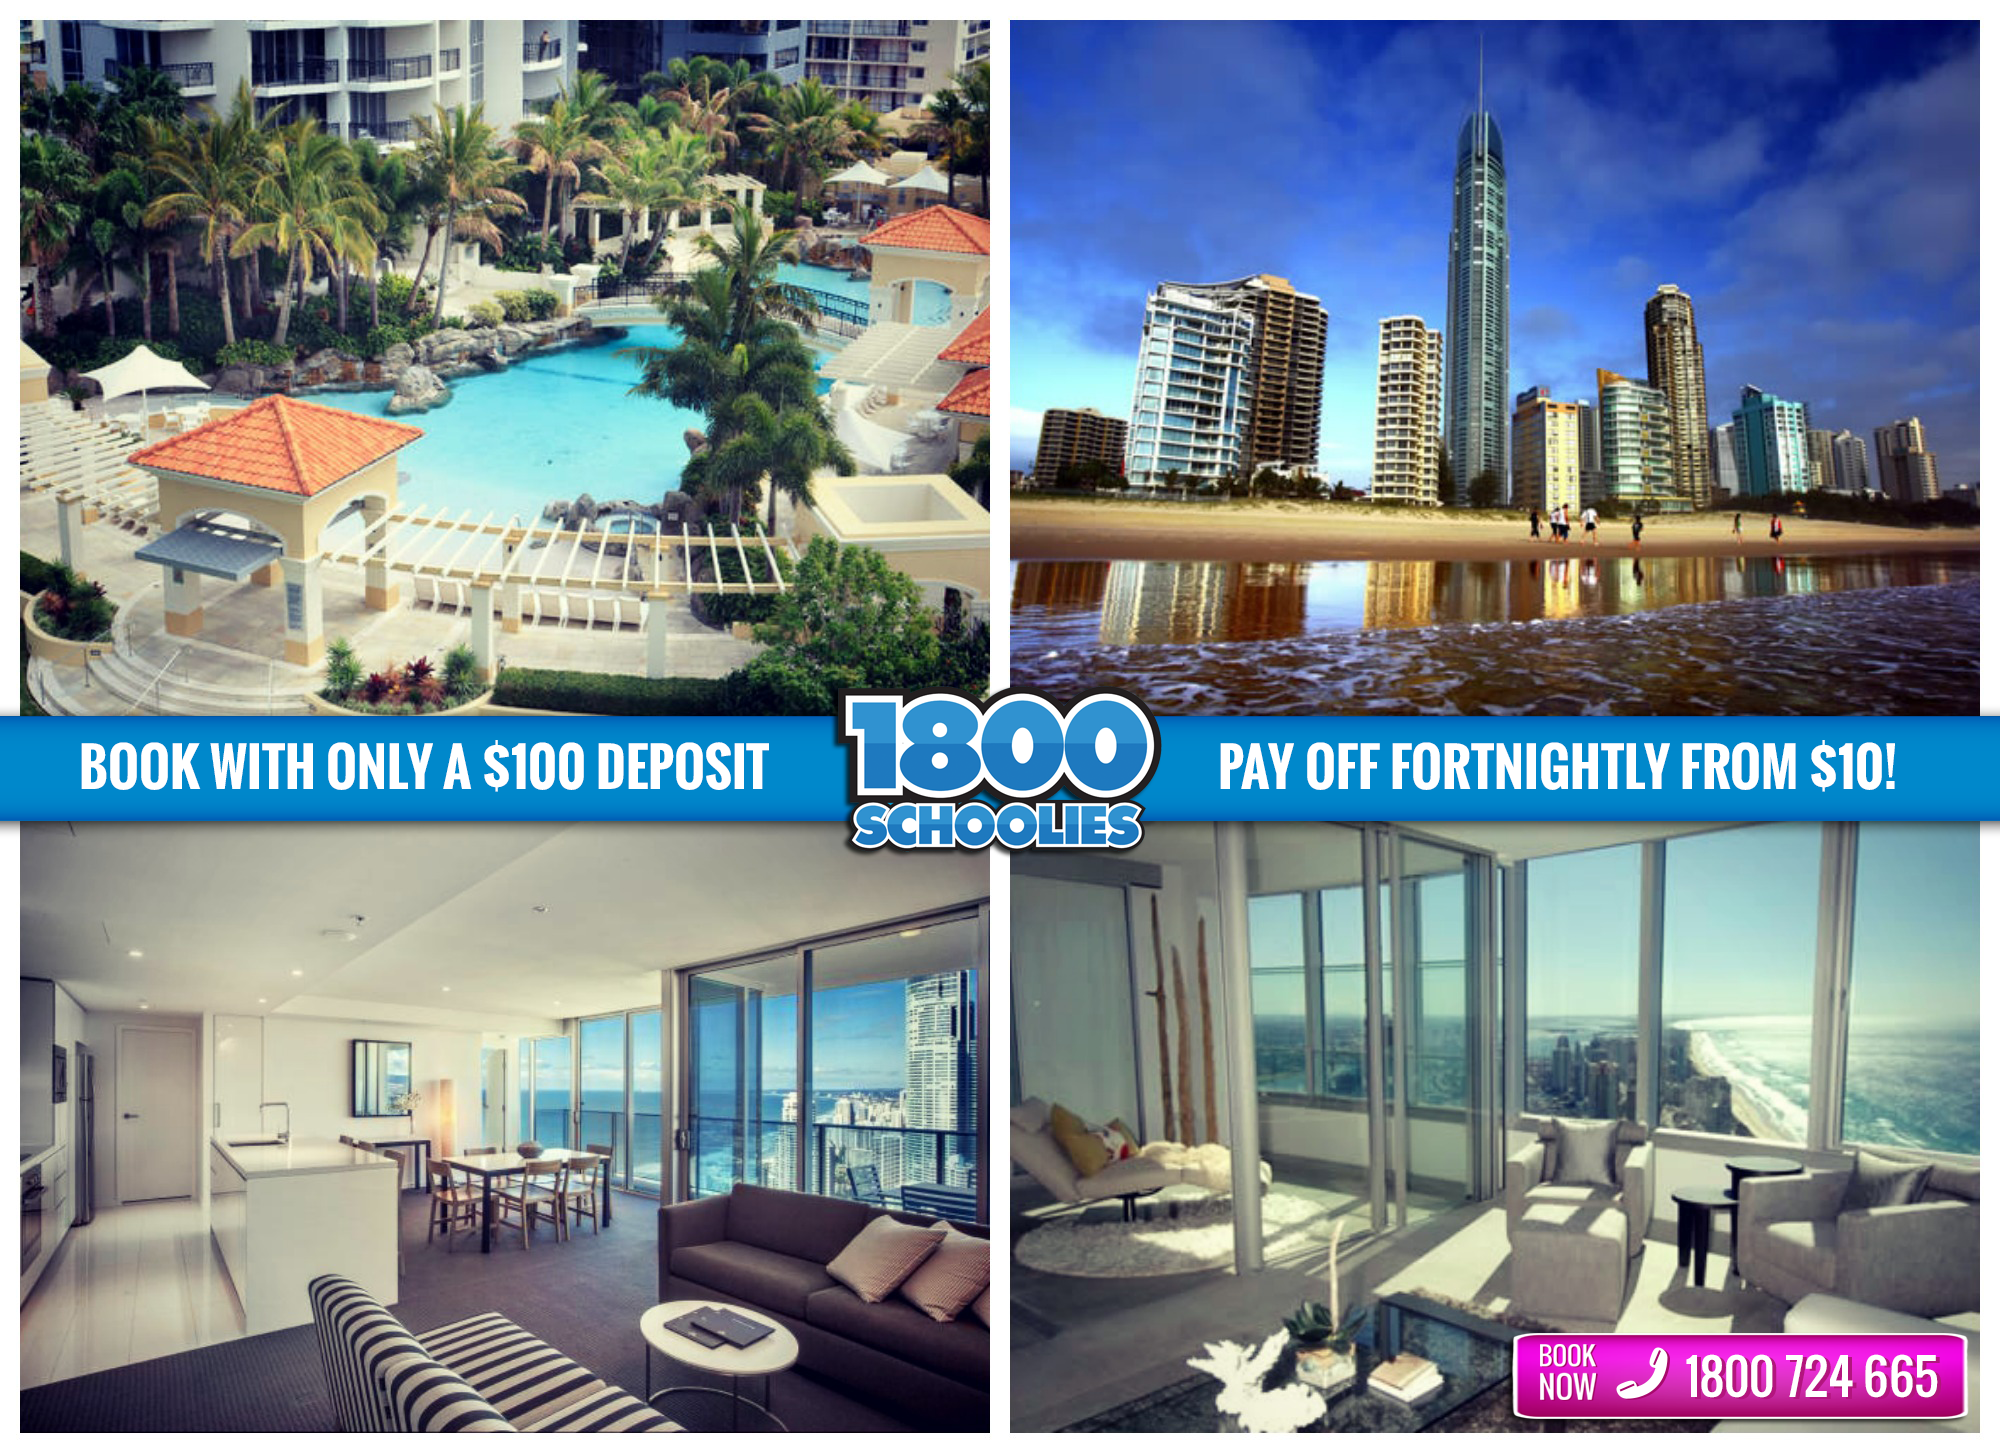 1800-official-bookings-towers-of-chevron